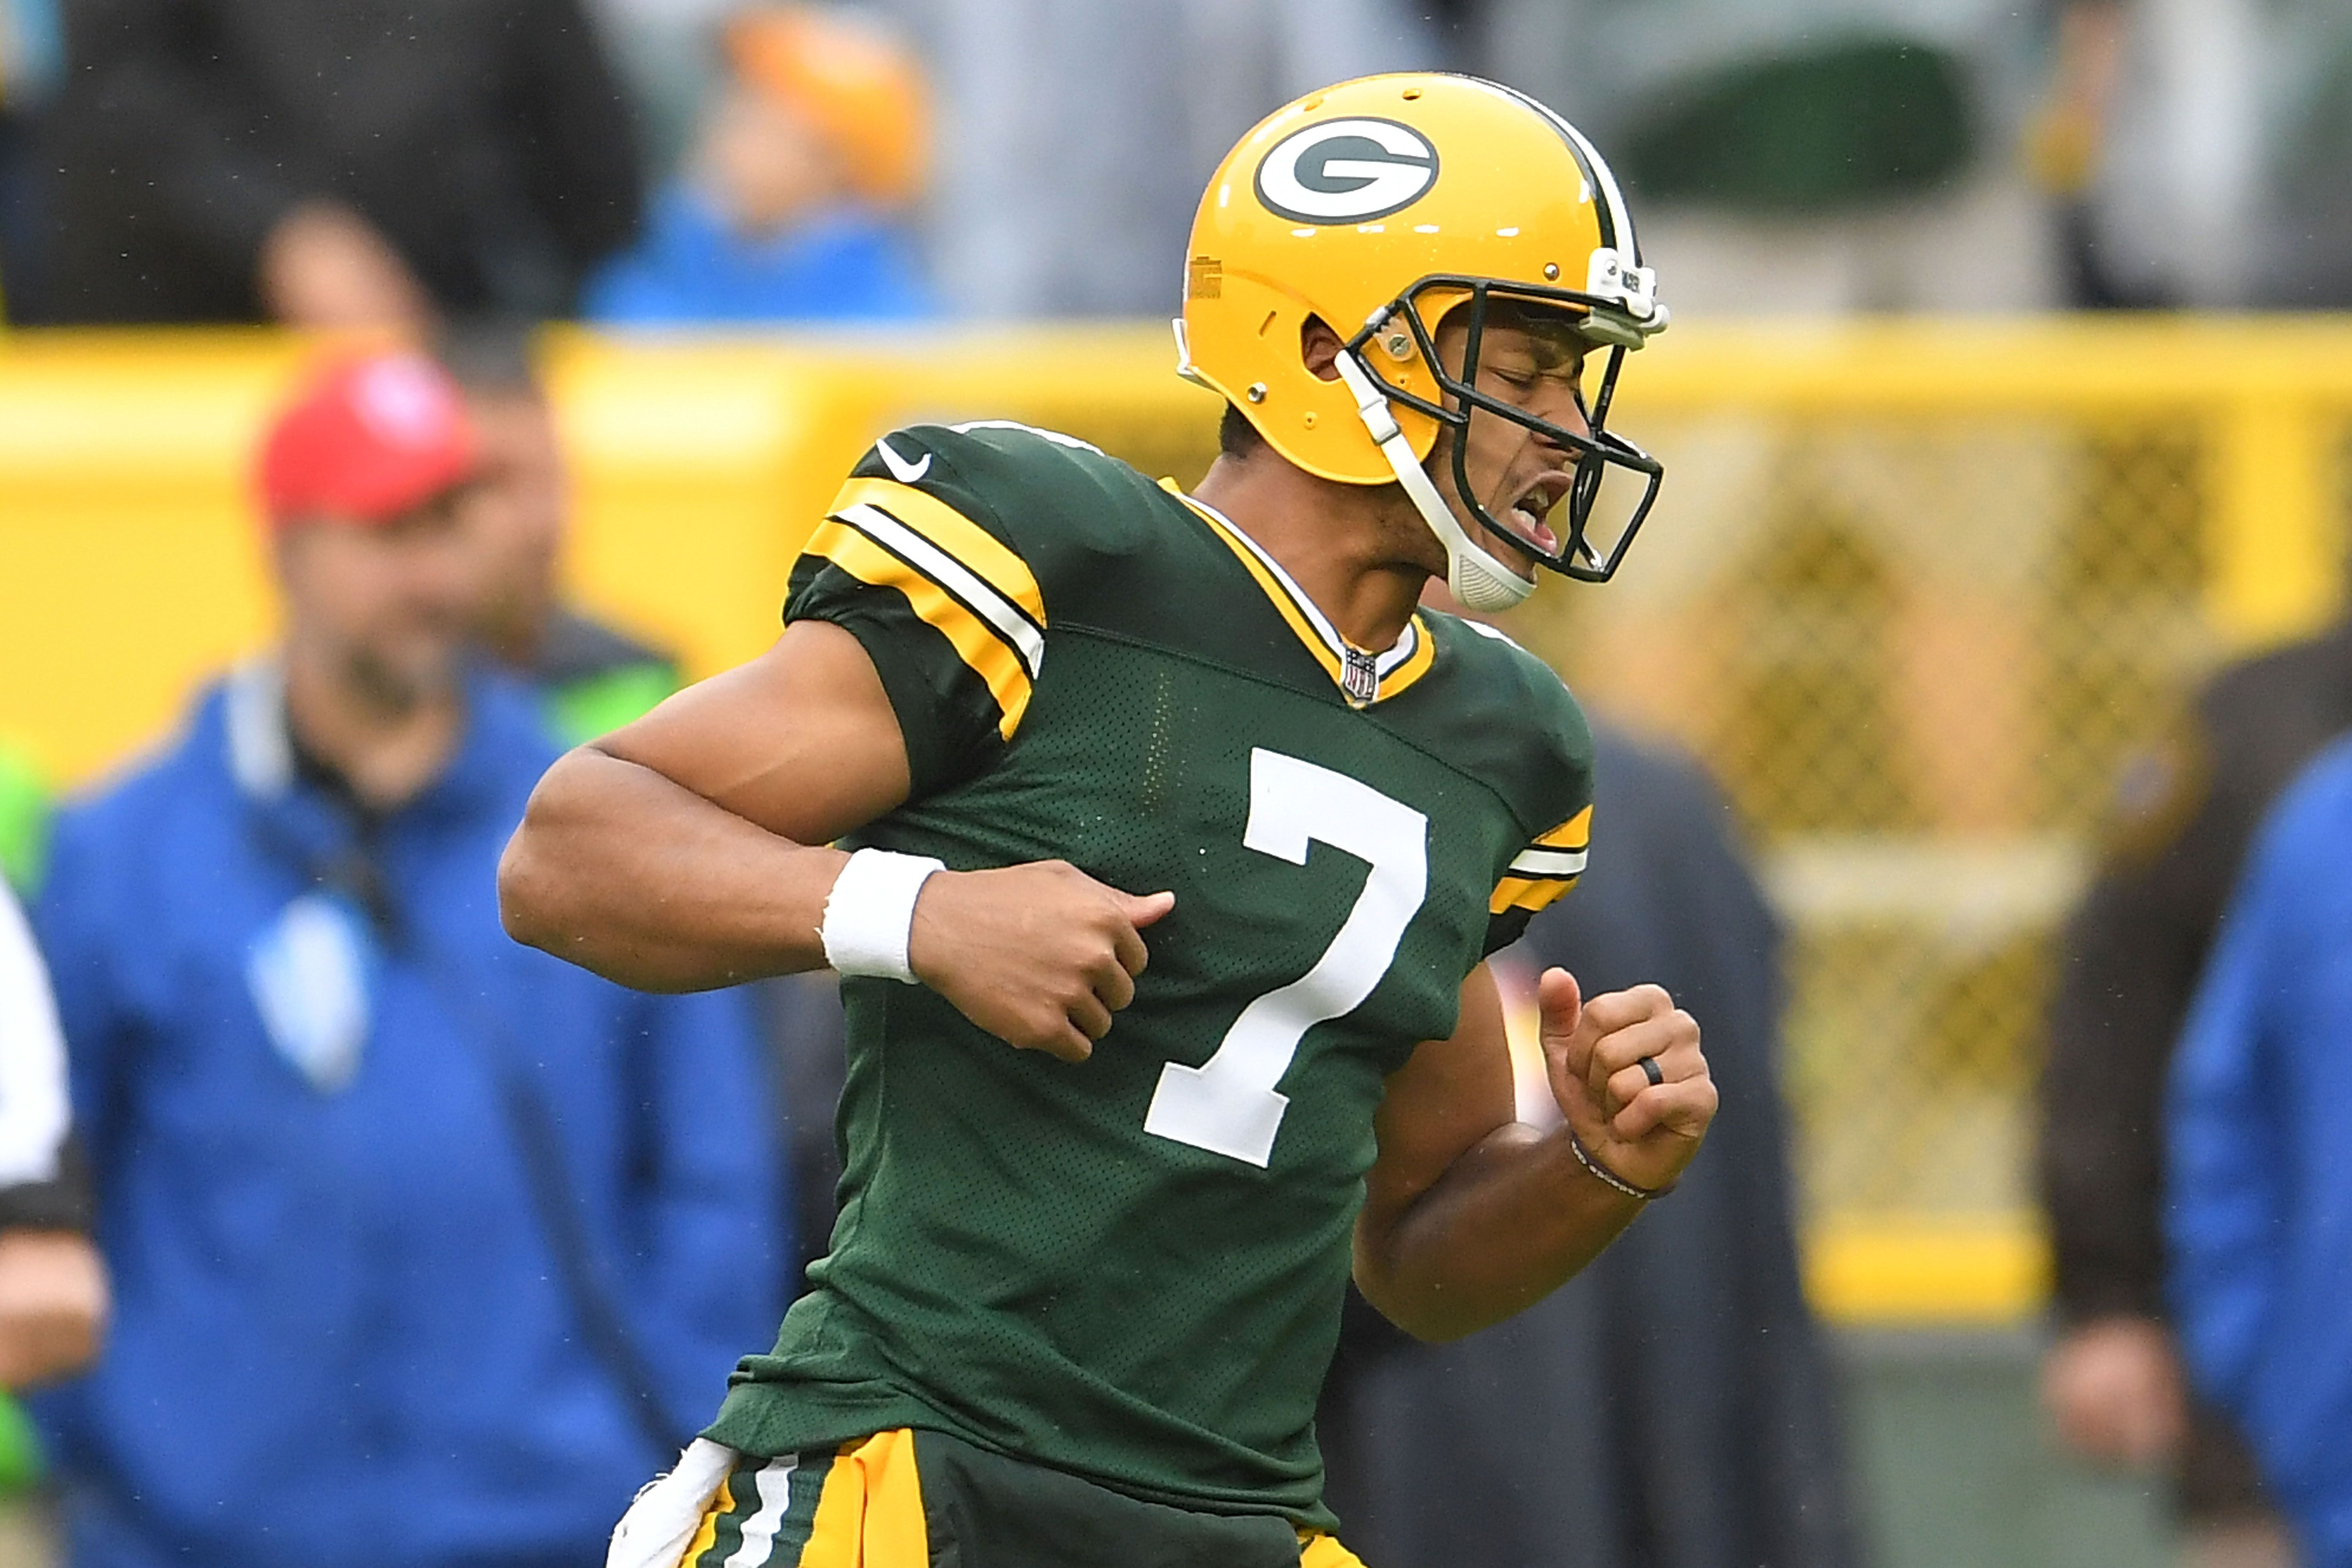 Green Bay Packers quarterback Aaron Rodgers has returned to Lambeau Field and should be a valuable resource for Brett Hundley